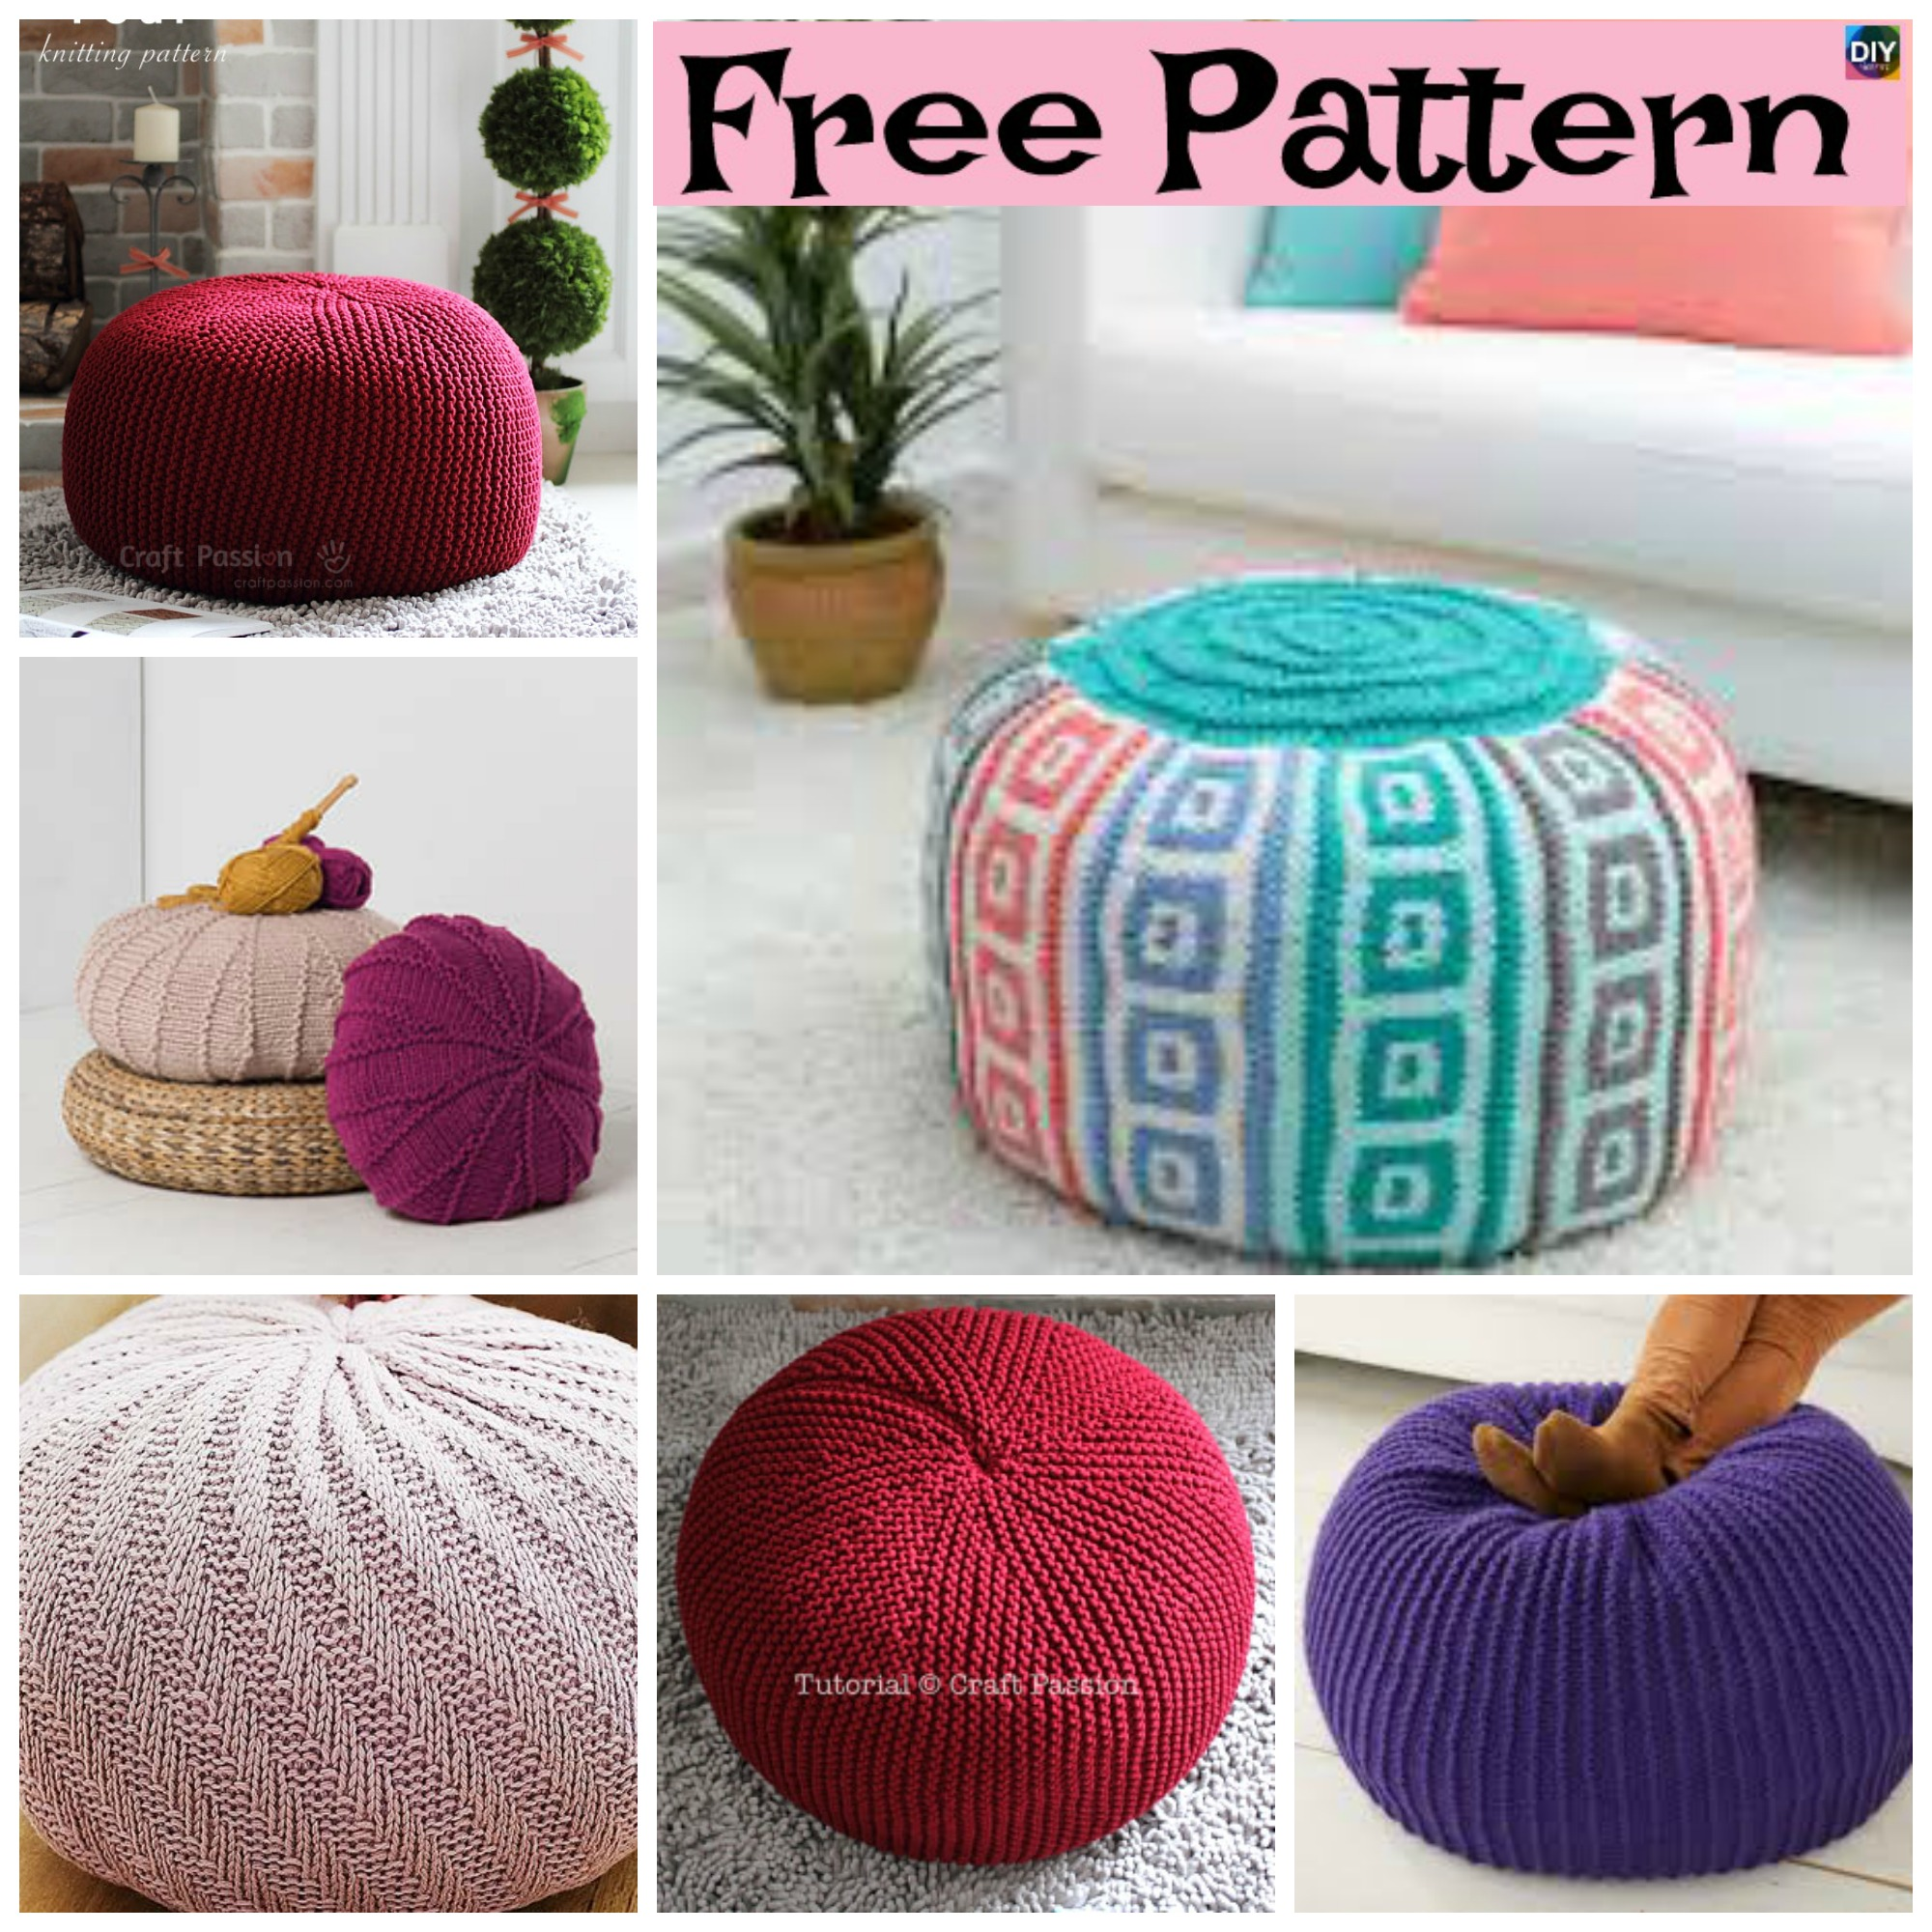 6 Beautiful Knitting Pouf Free Patterns - DIY 4 EVER